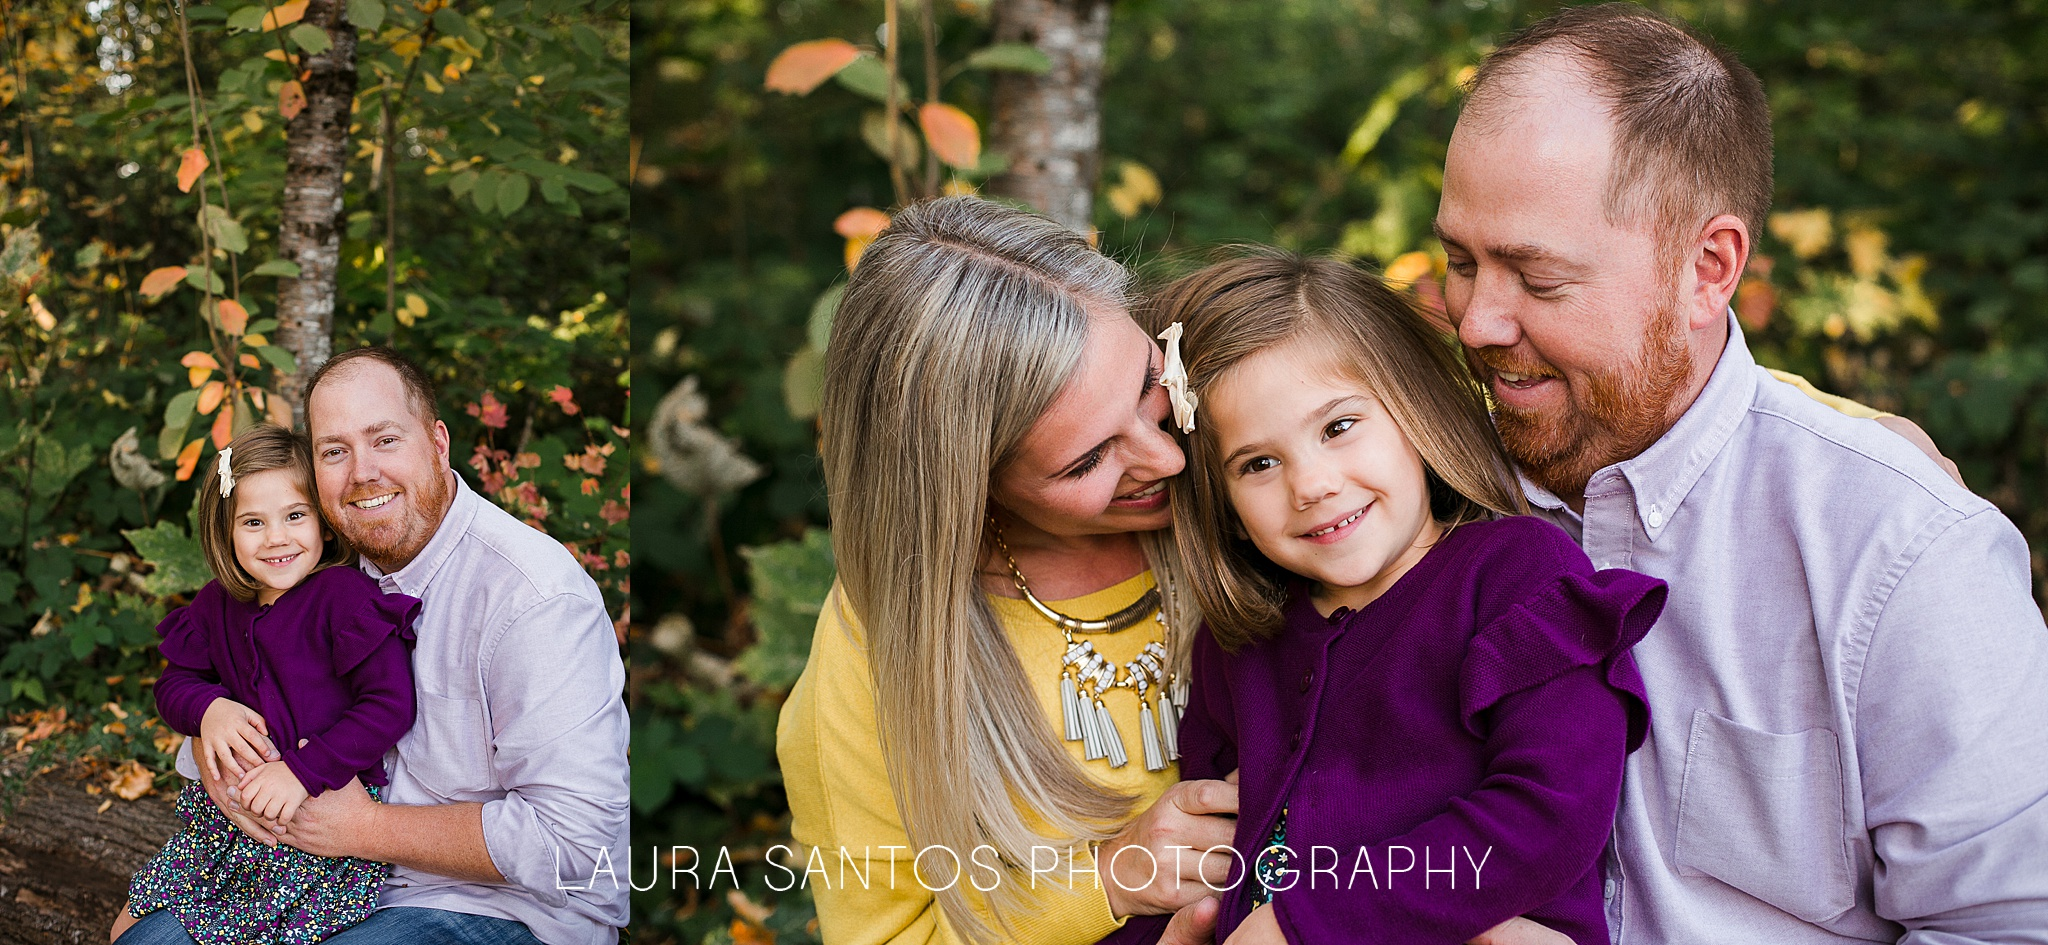 Laura Santos Photography Portland Oregon Family Photographer_0852.jpg